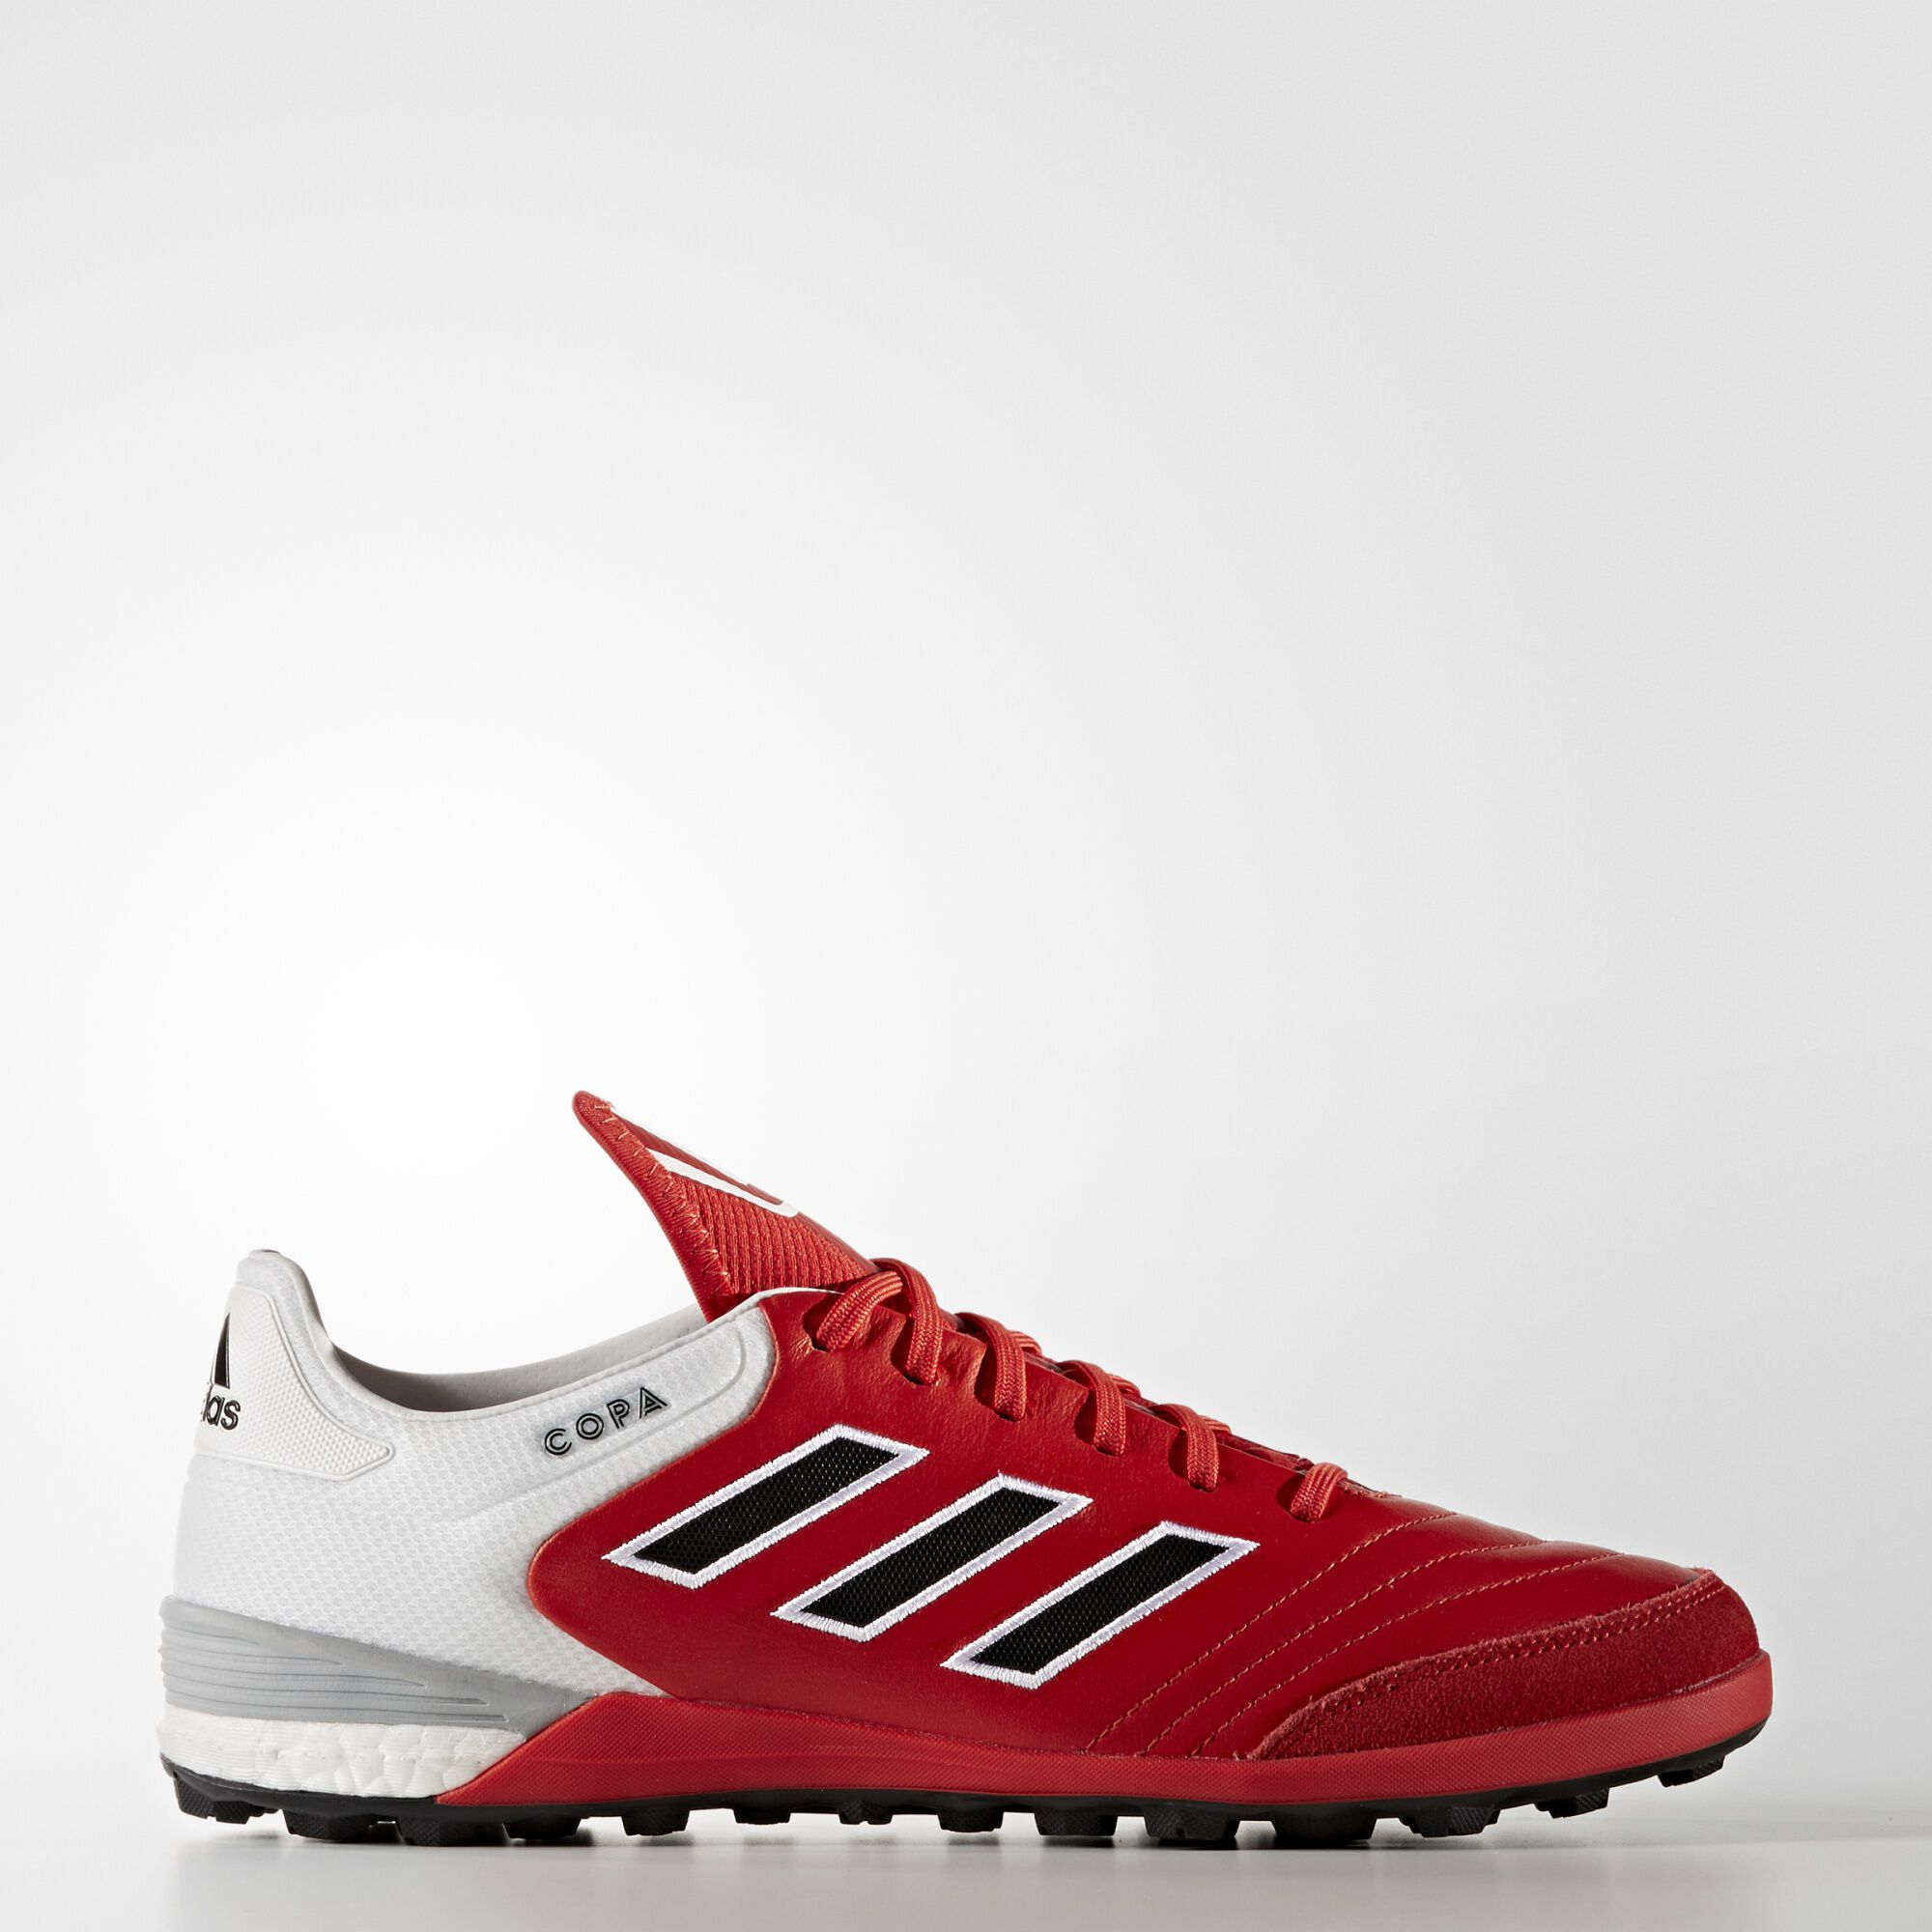 adidas turf soccer shoes 17.1